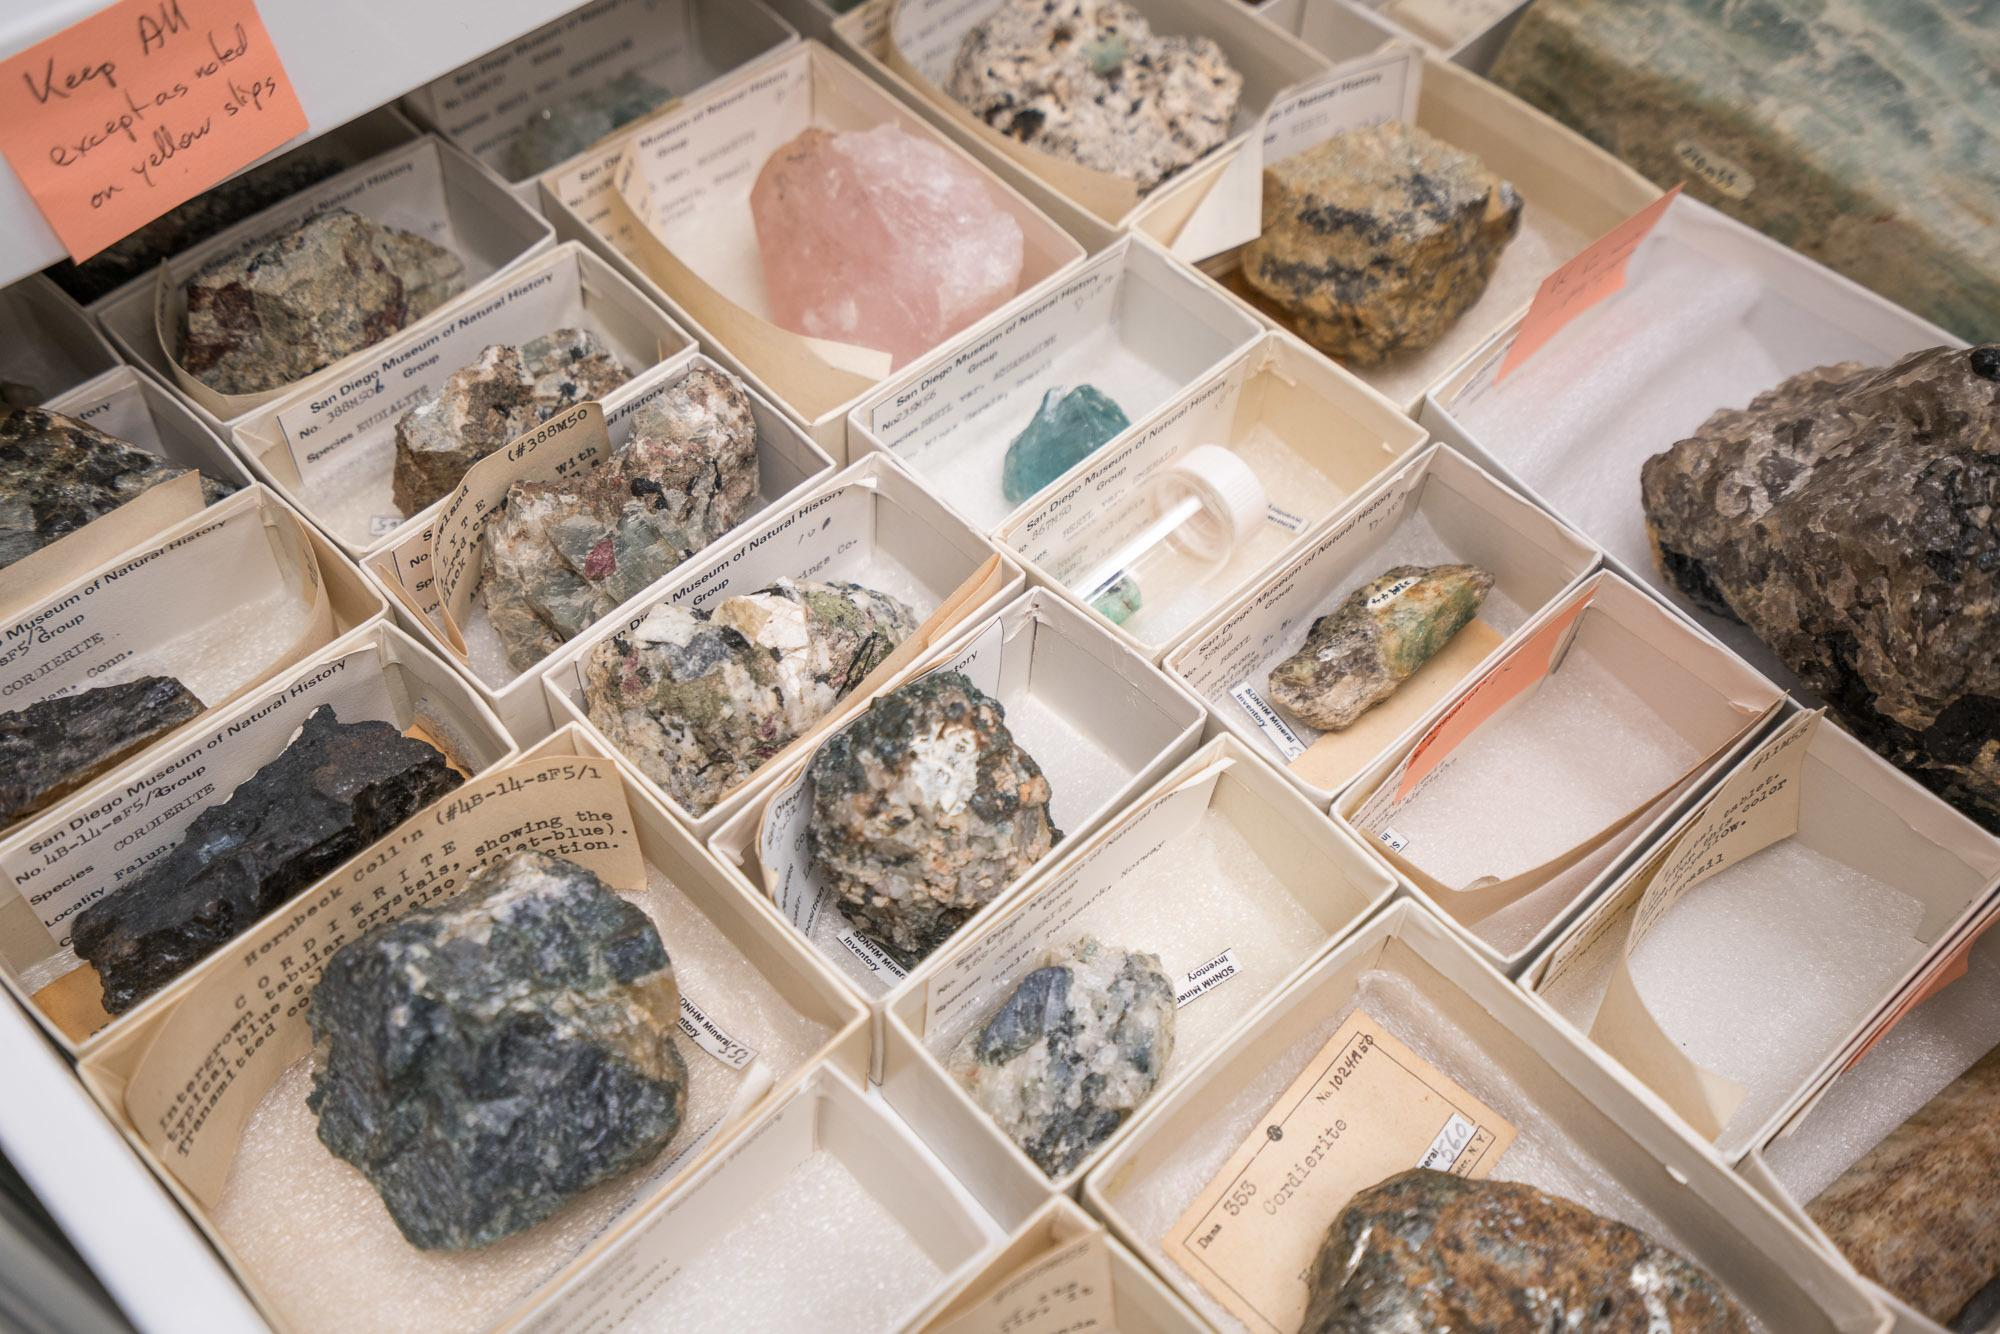 San Diego Natural History Museum has an extensive collection of local minerals.